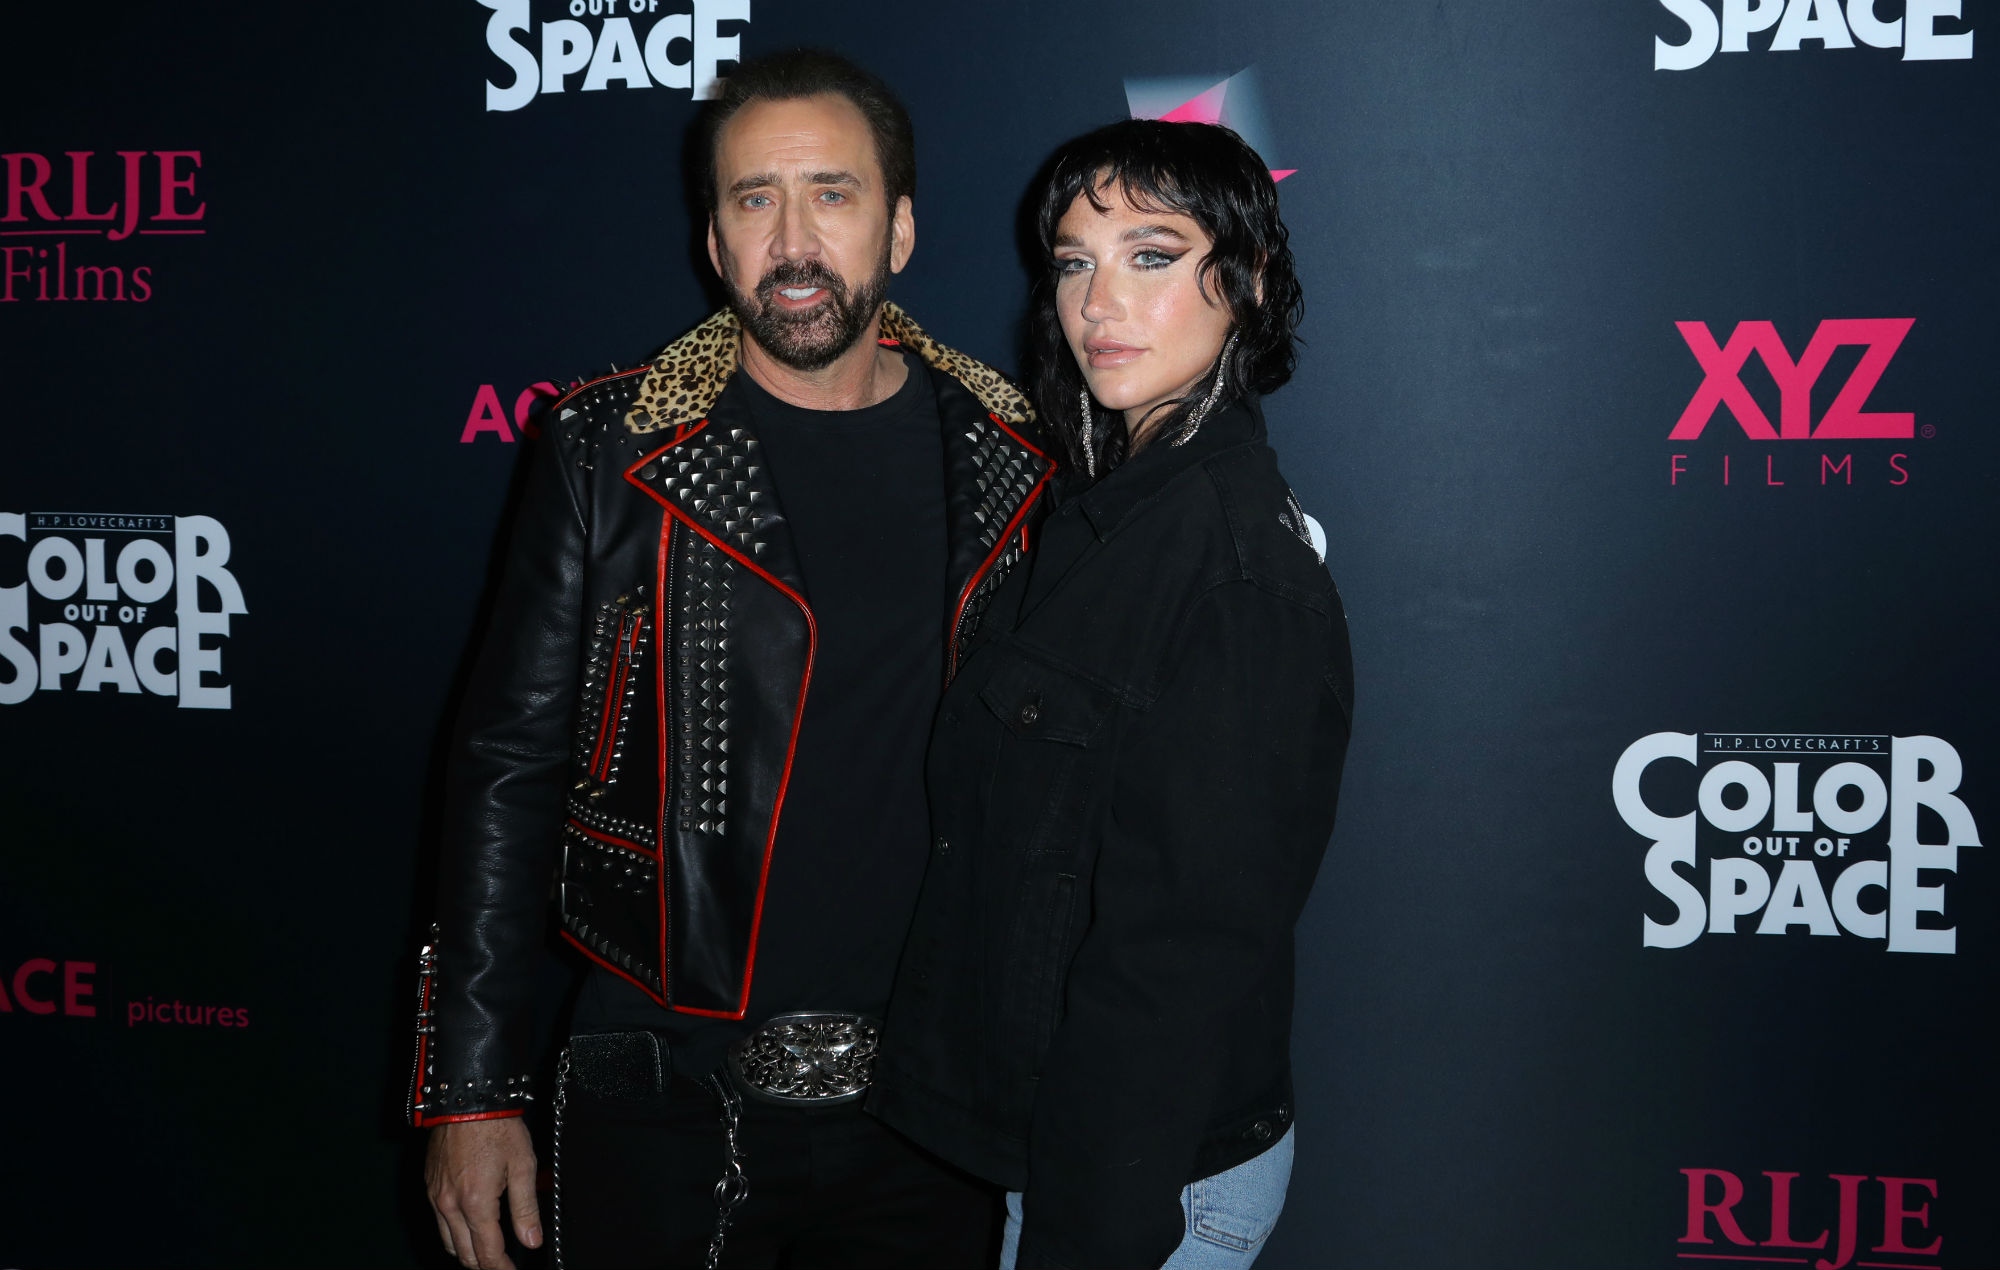 Kesha has released a new song about Nicolas Cage - EpicNews